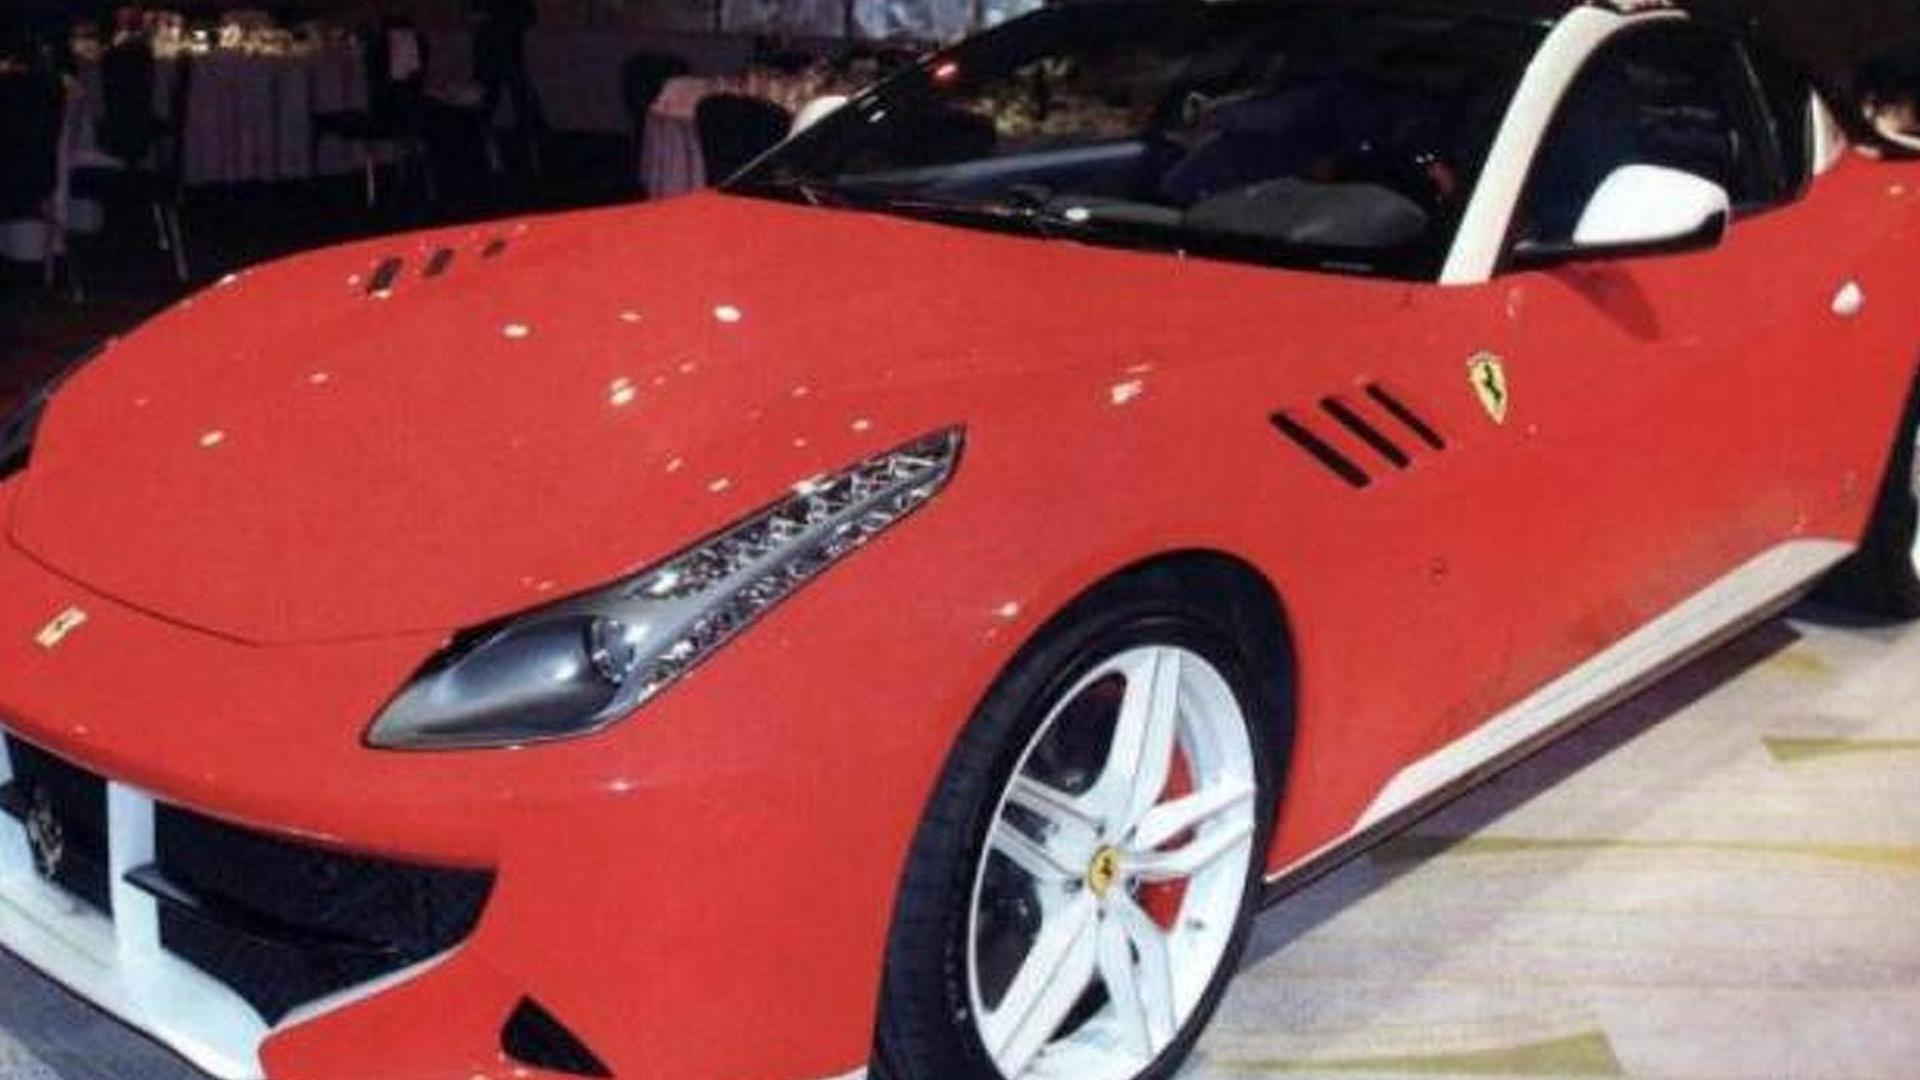 One-off Ferrari SP FFX first photo emerges, isn't the prettiest prancing horse out there